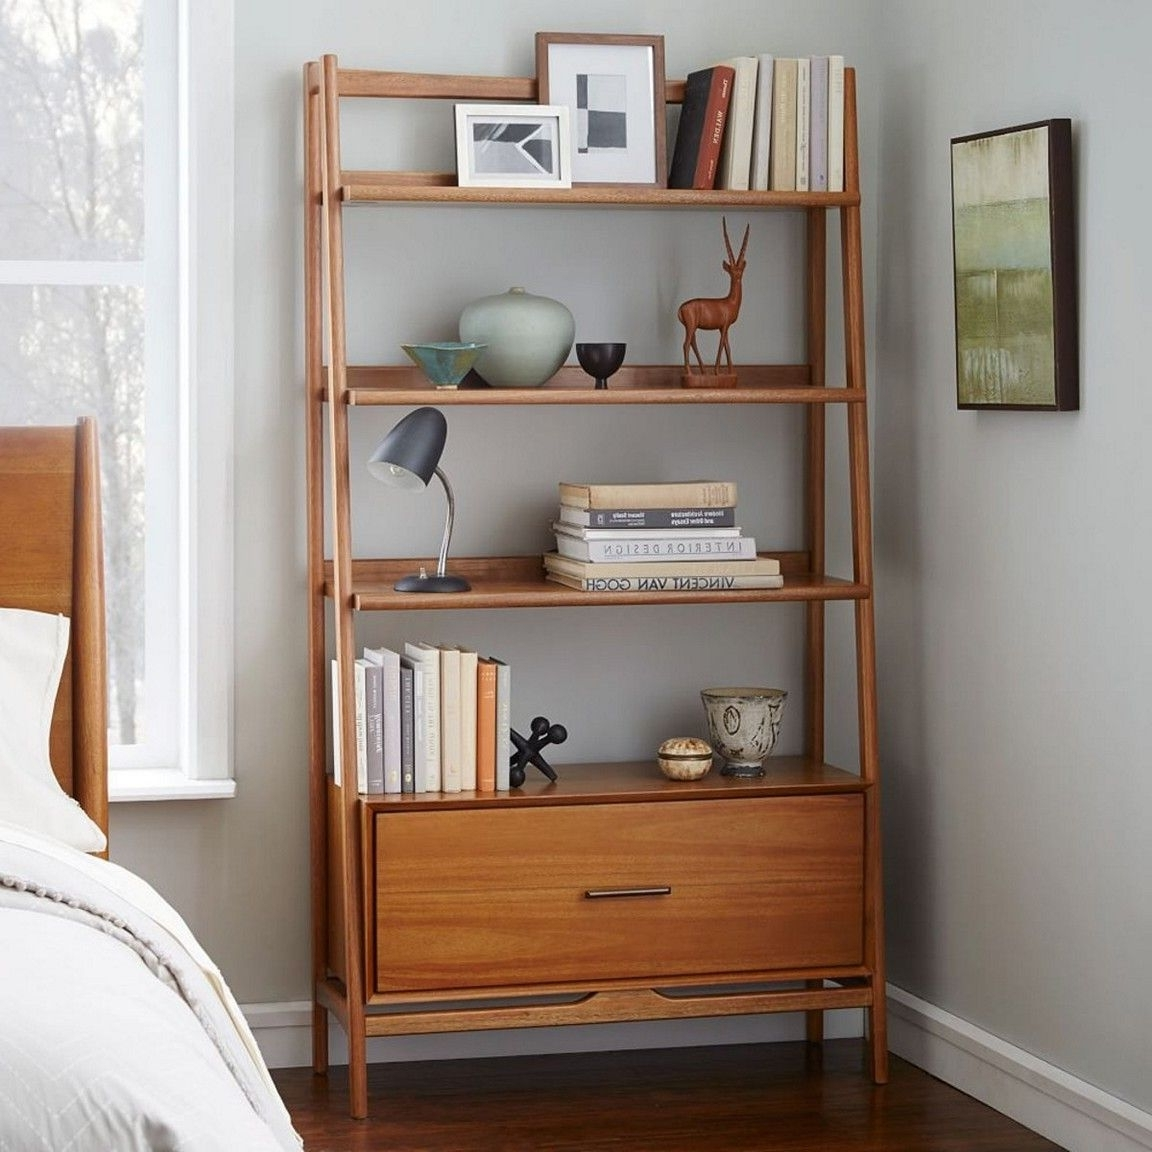 Most Recent Midcentury Bookcases For 20+ Beautiful Vintage Mid Century Modern Bedroom Design Ideas (View 11 of 15)